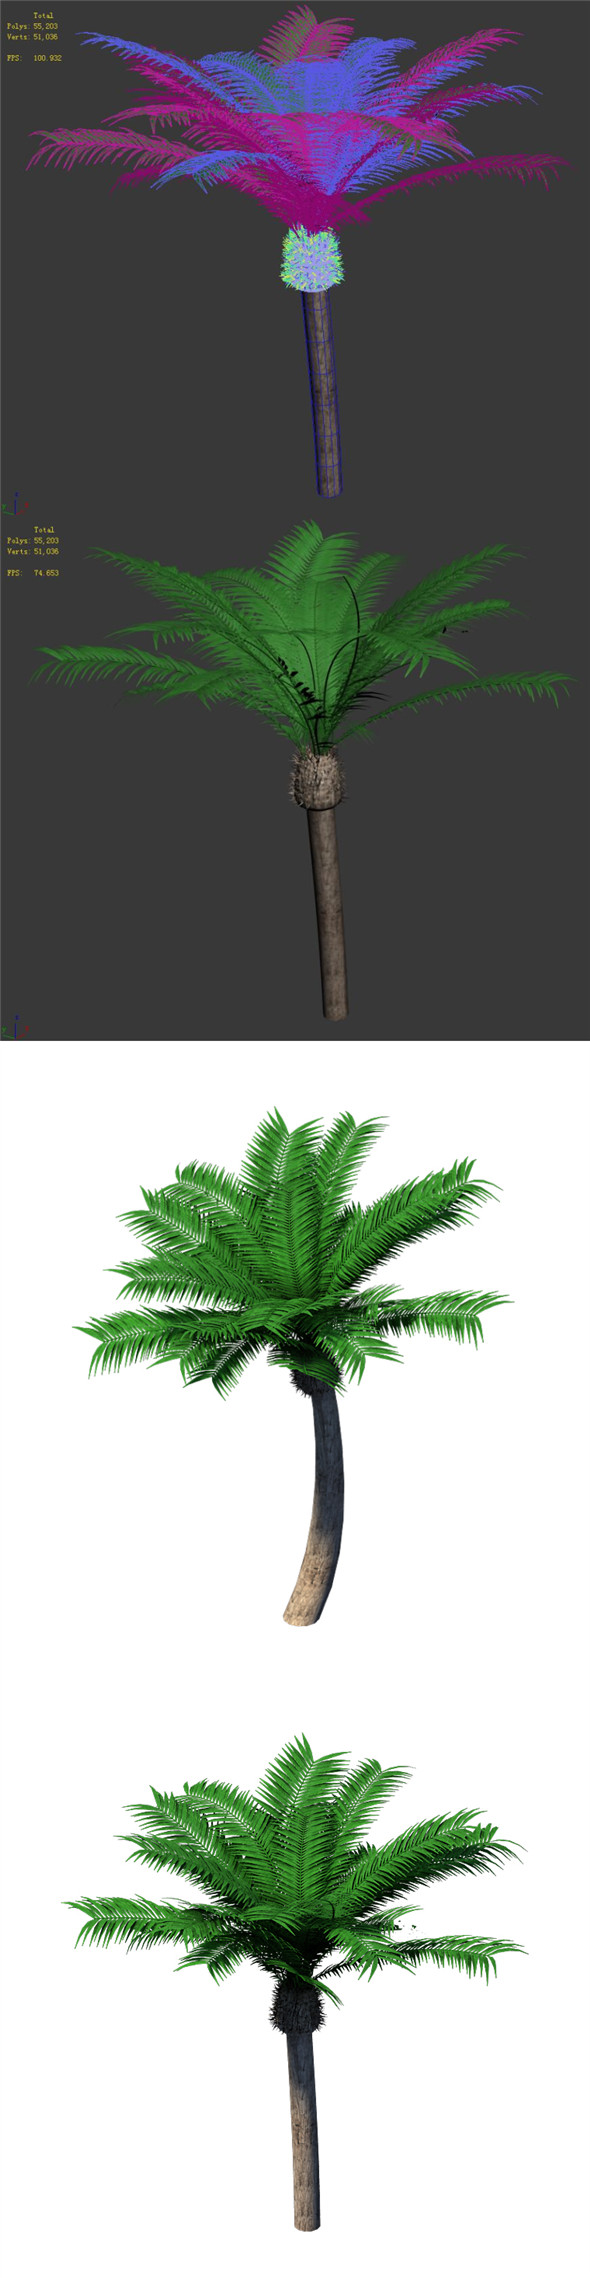 Plant - Coconut Tree 32 - 3DOcean Item for Sale